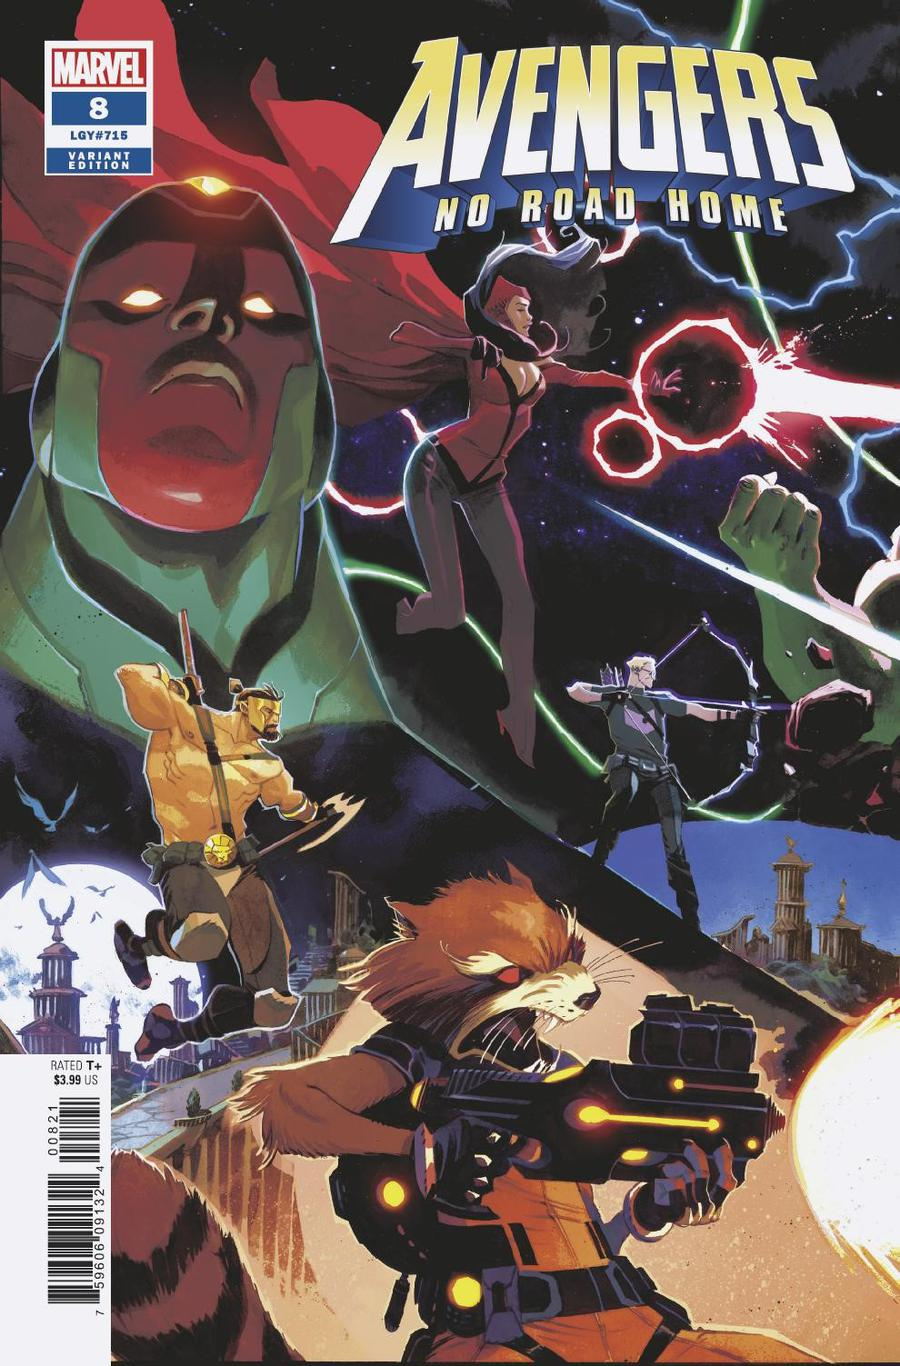 Avengers No Road Home #8 Cover B Variant Matteo Scalera Connecting Cover (1 Of 3)